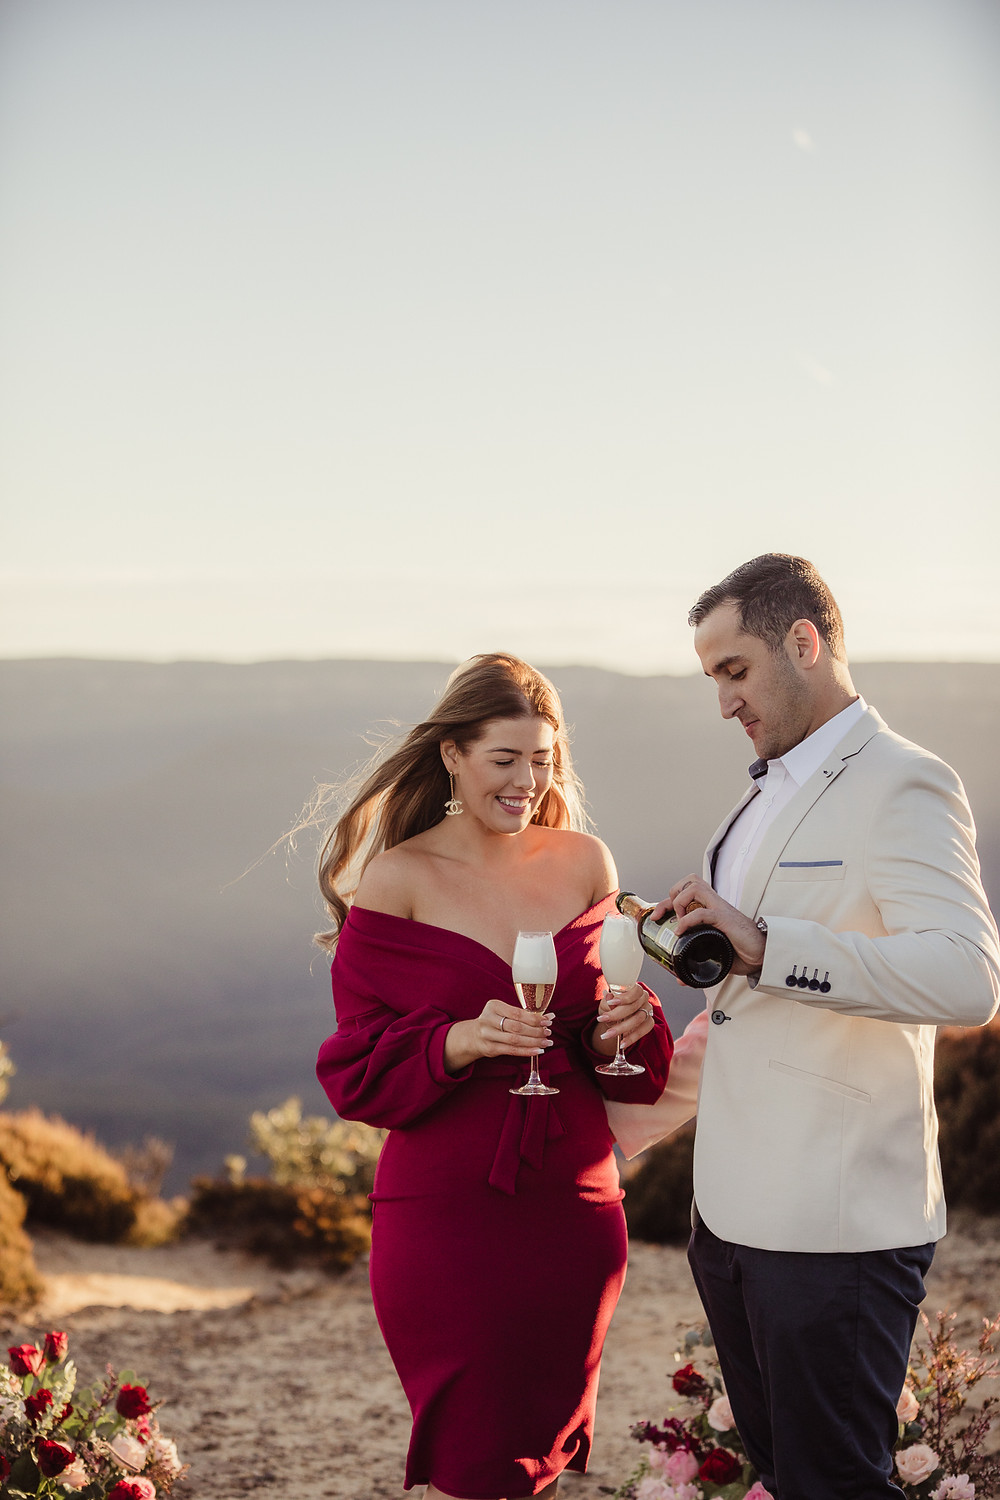 surprise proposal sydney wedding photographer